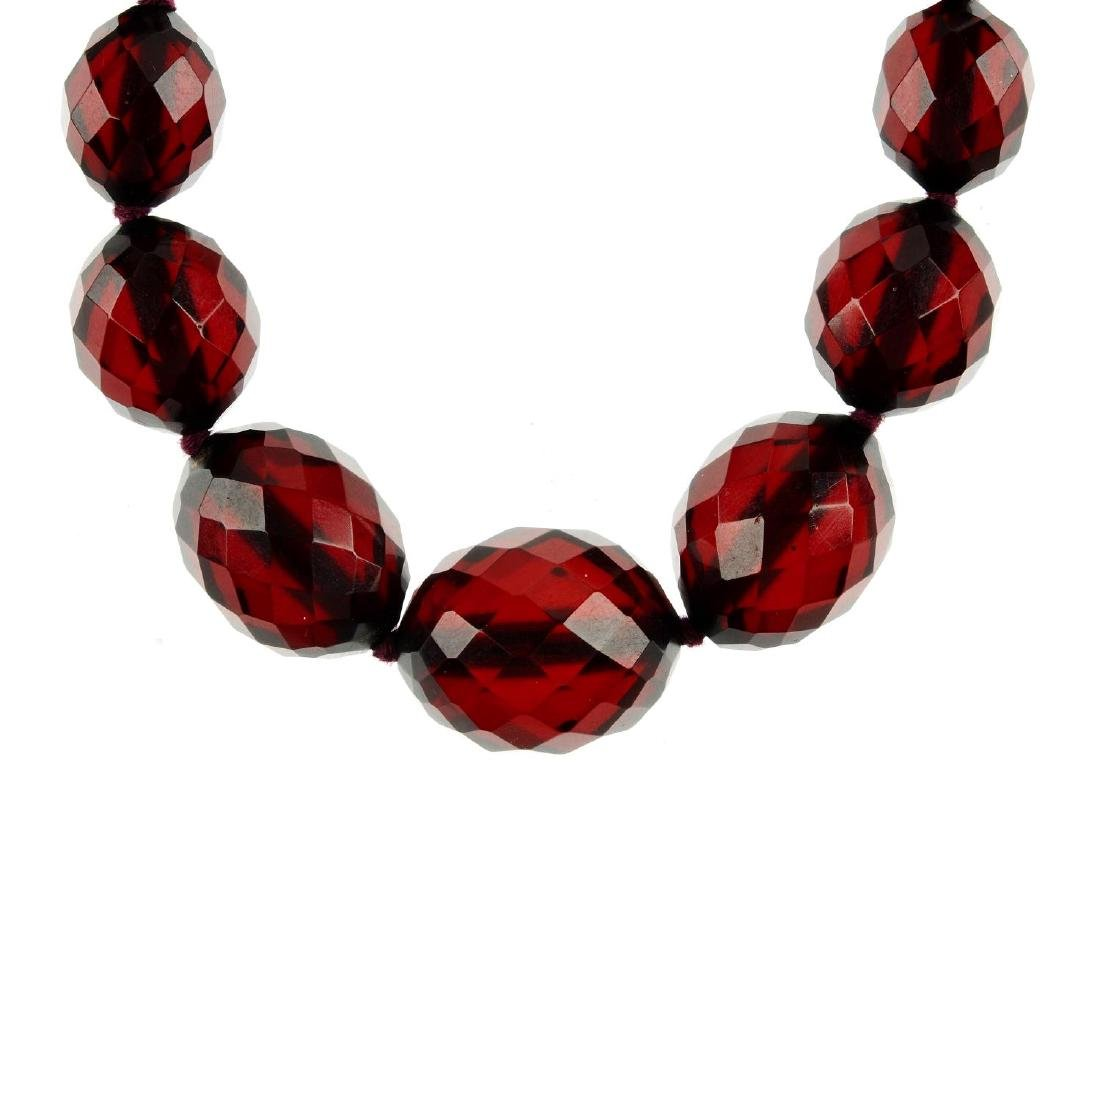 A bakelite necklace. Comprising a single row of faceted